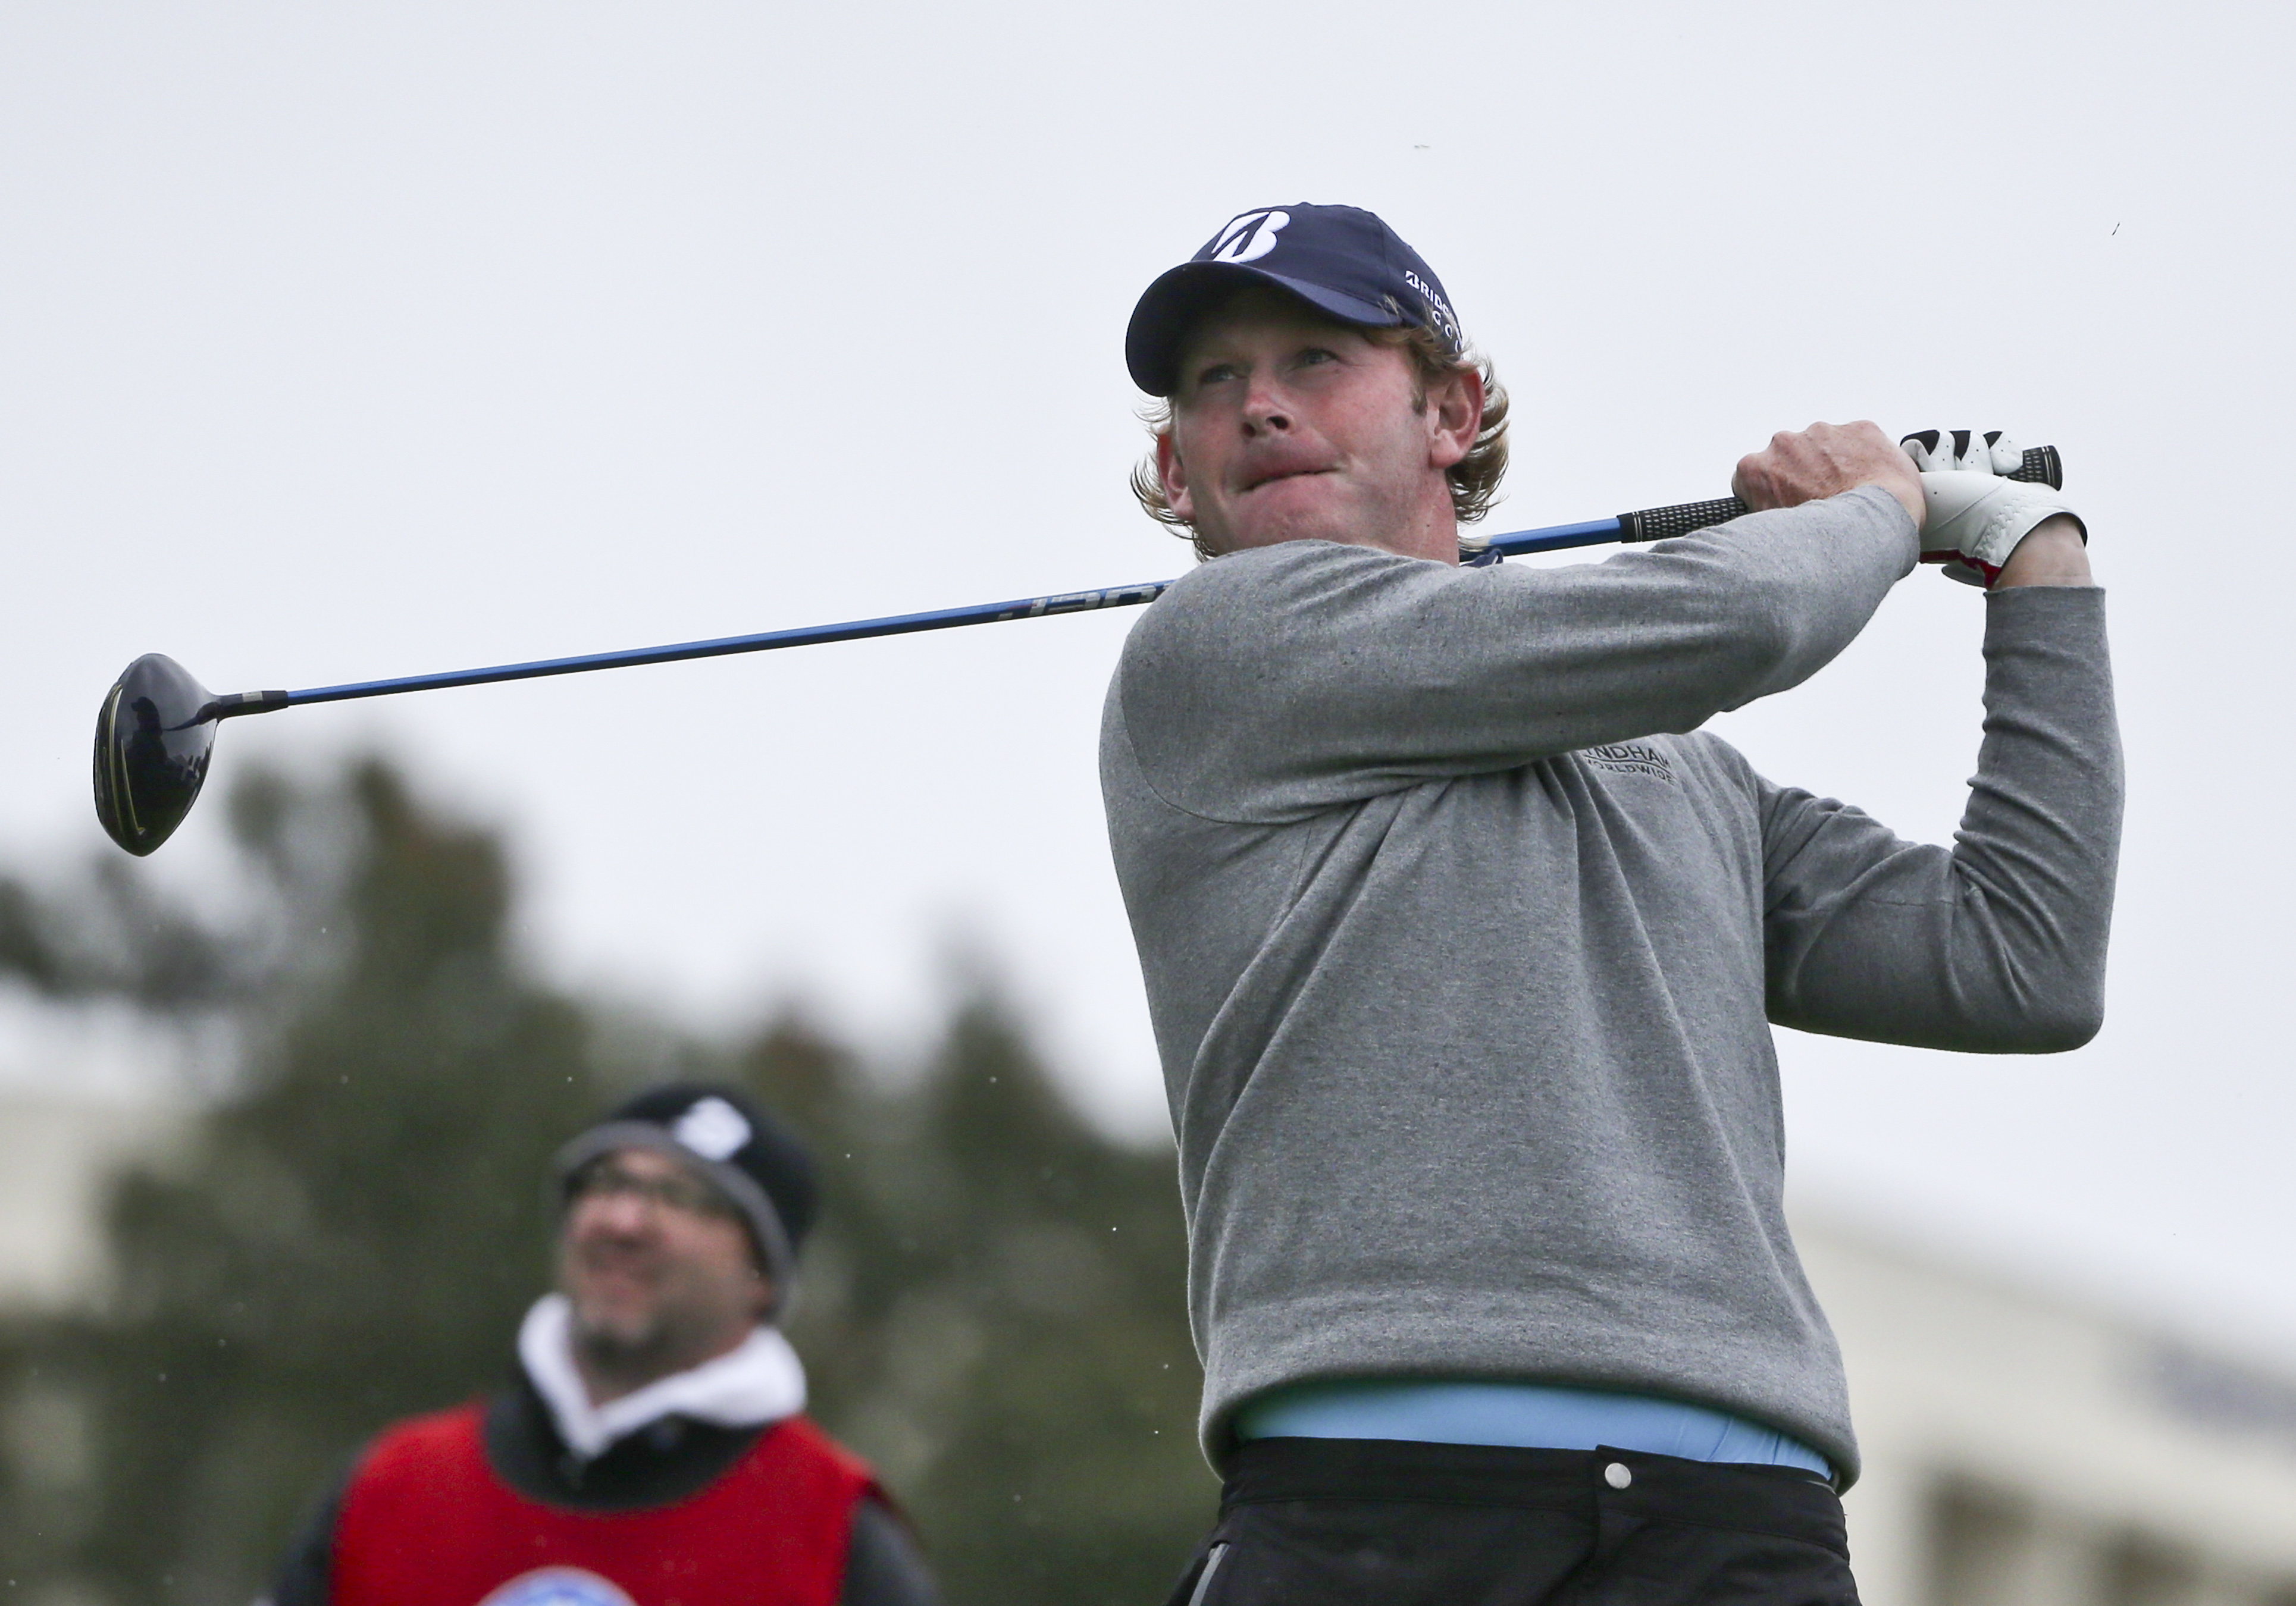 Brandt Snedeker watches his tee shot on the 18th hole at Torrey Pines during the final round of the Farmers Insurance Open golf tournament  Sunday, Jan. 31, 2016, in San Diego. (AP Photo/Lenny Ignelzi)